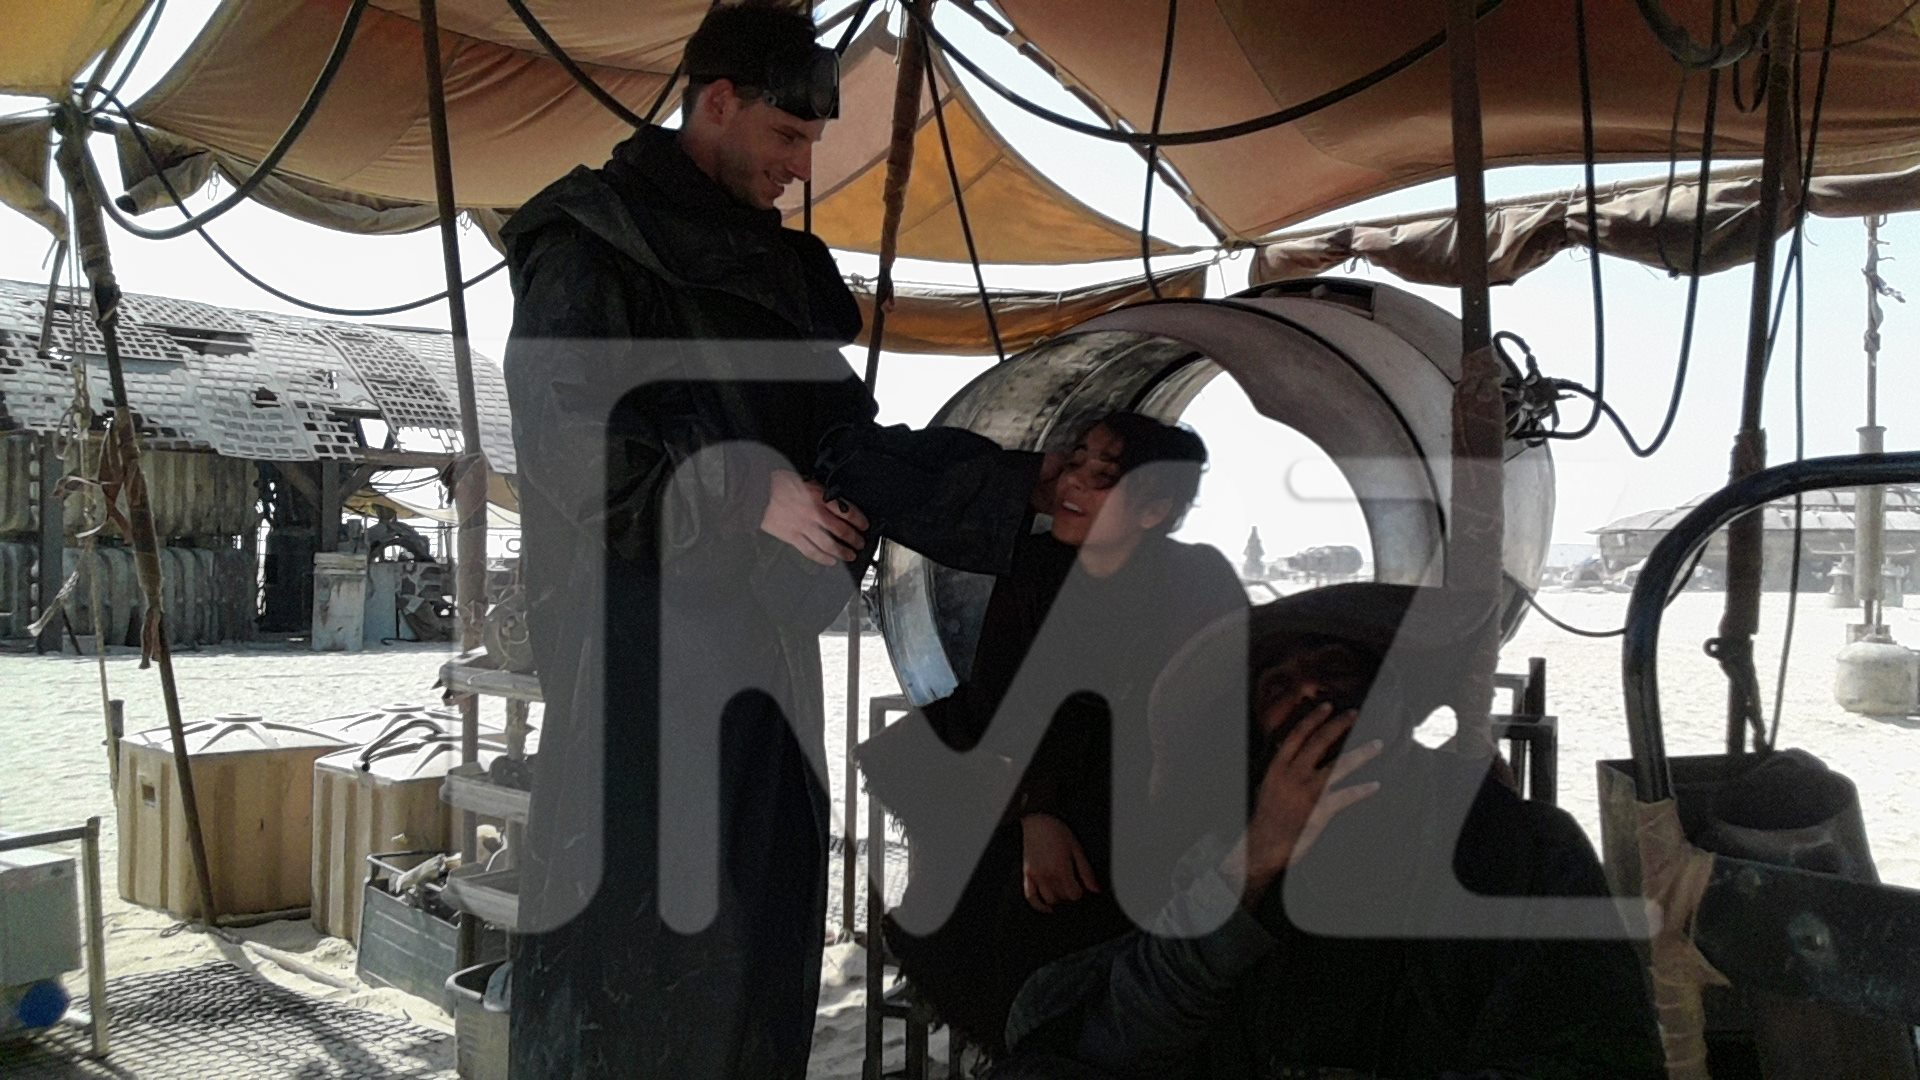 Imagenes del set de Star Wars: The Force Awakens, y demas.